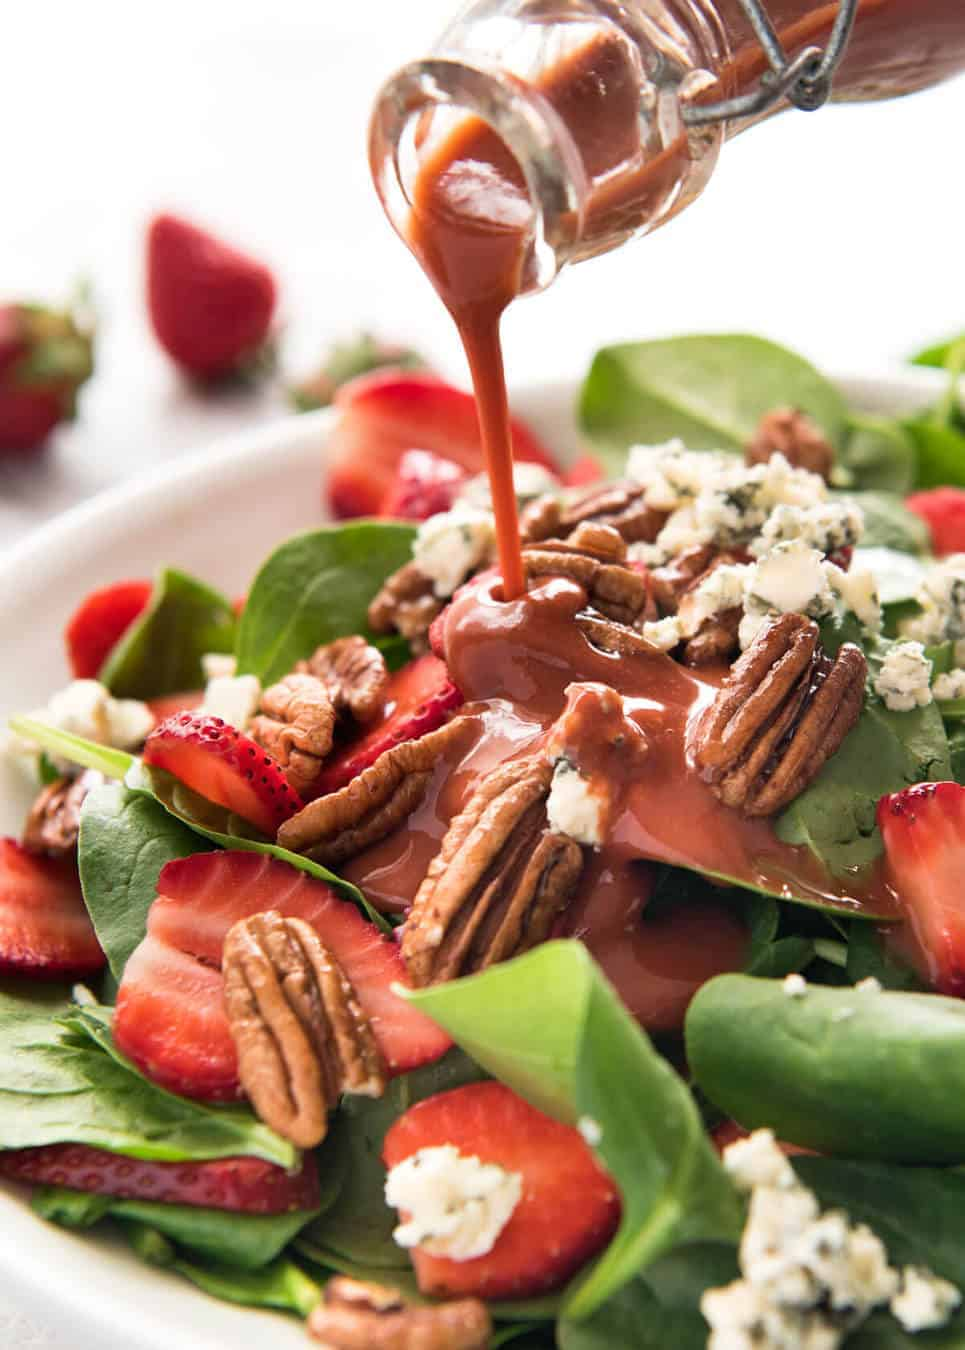 Strawberry and Turkey Balsamic Salad Recipe